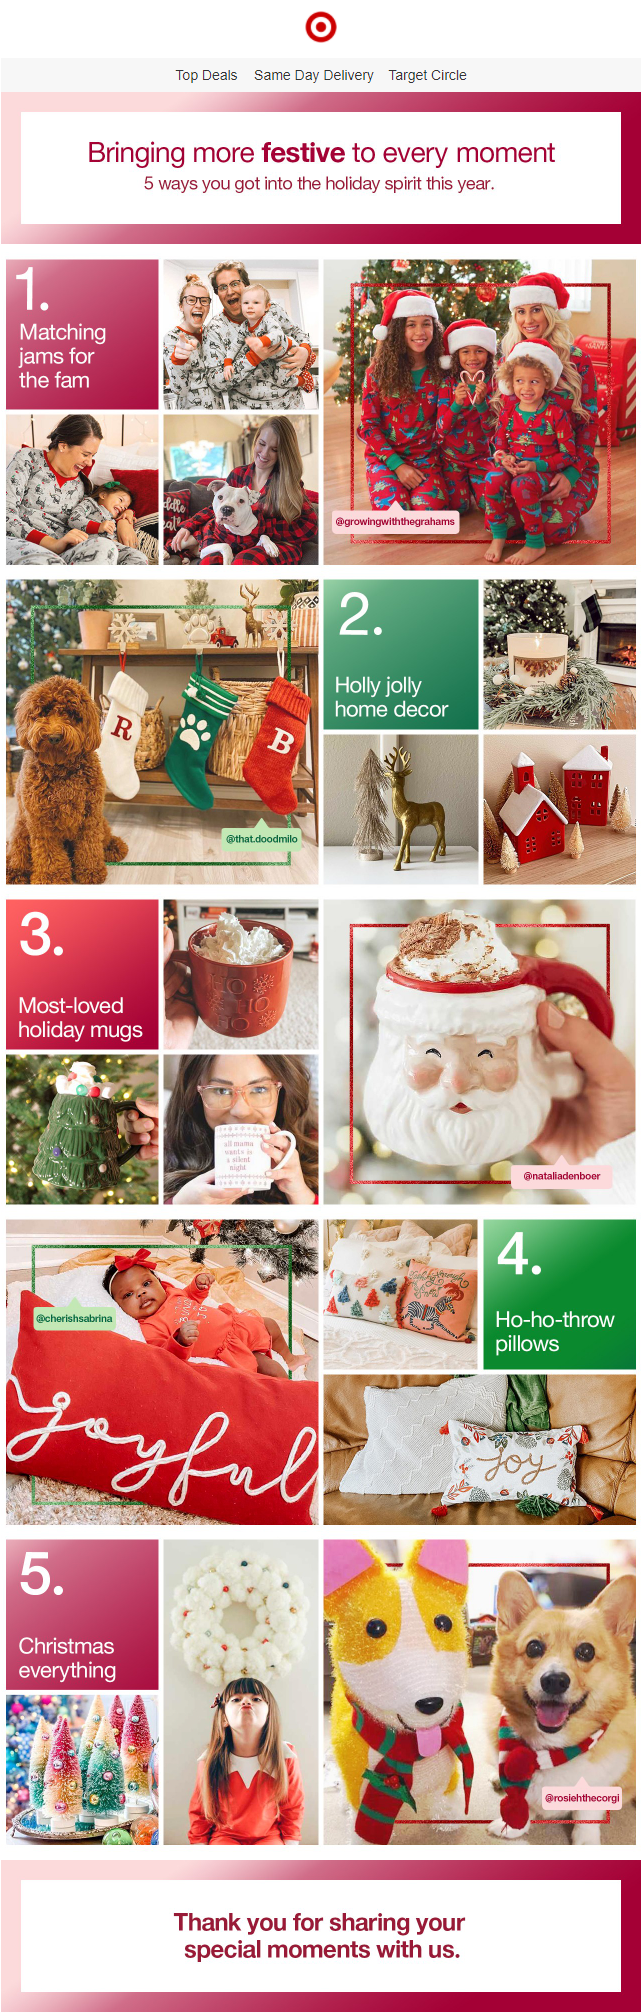 target-festive-ways-you-celebrated-the-season